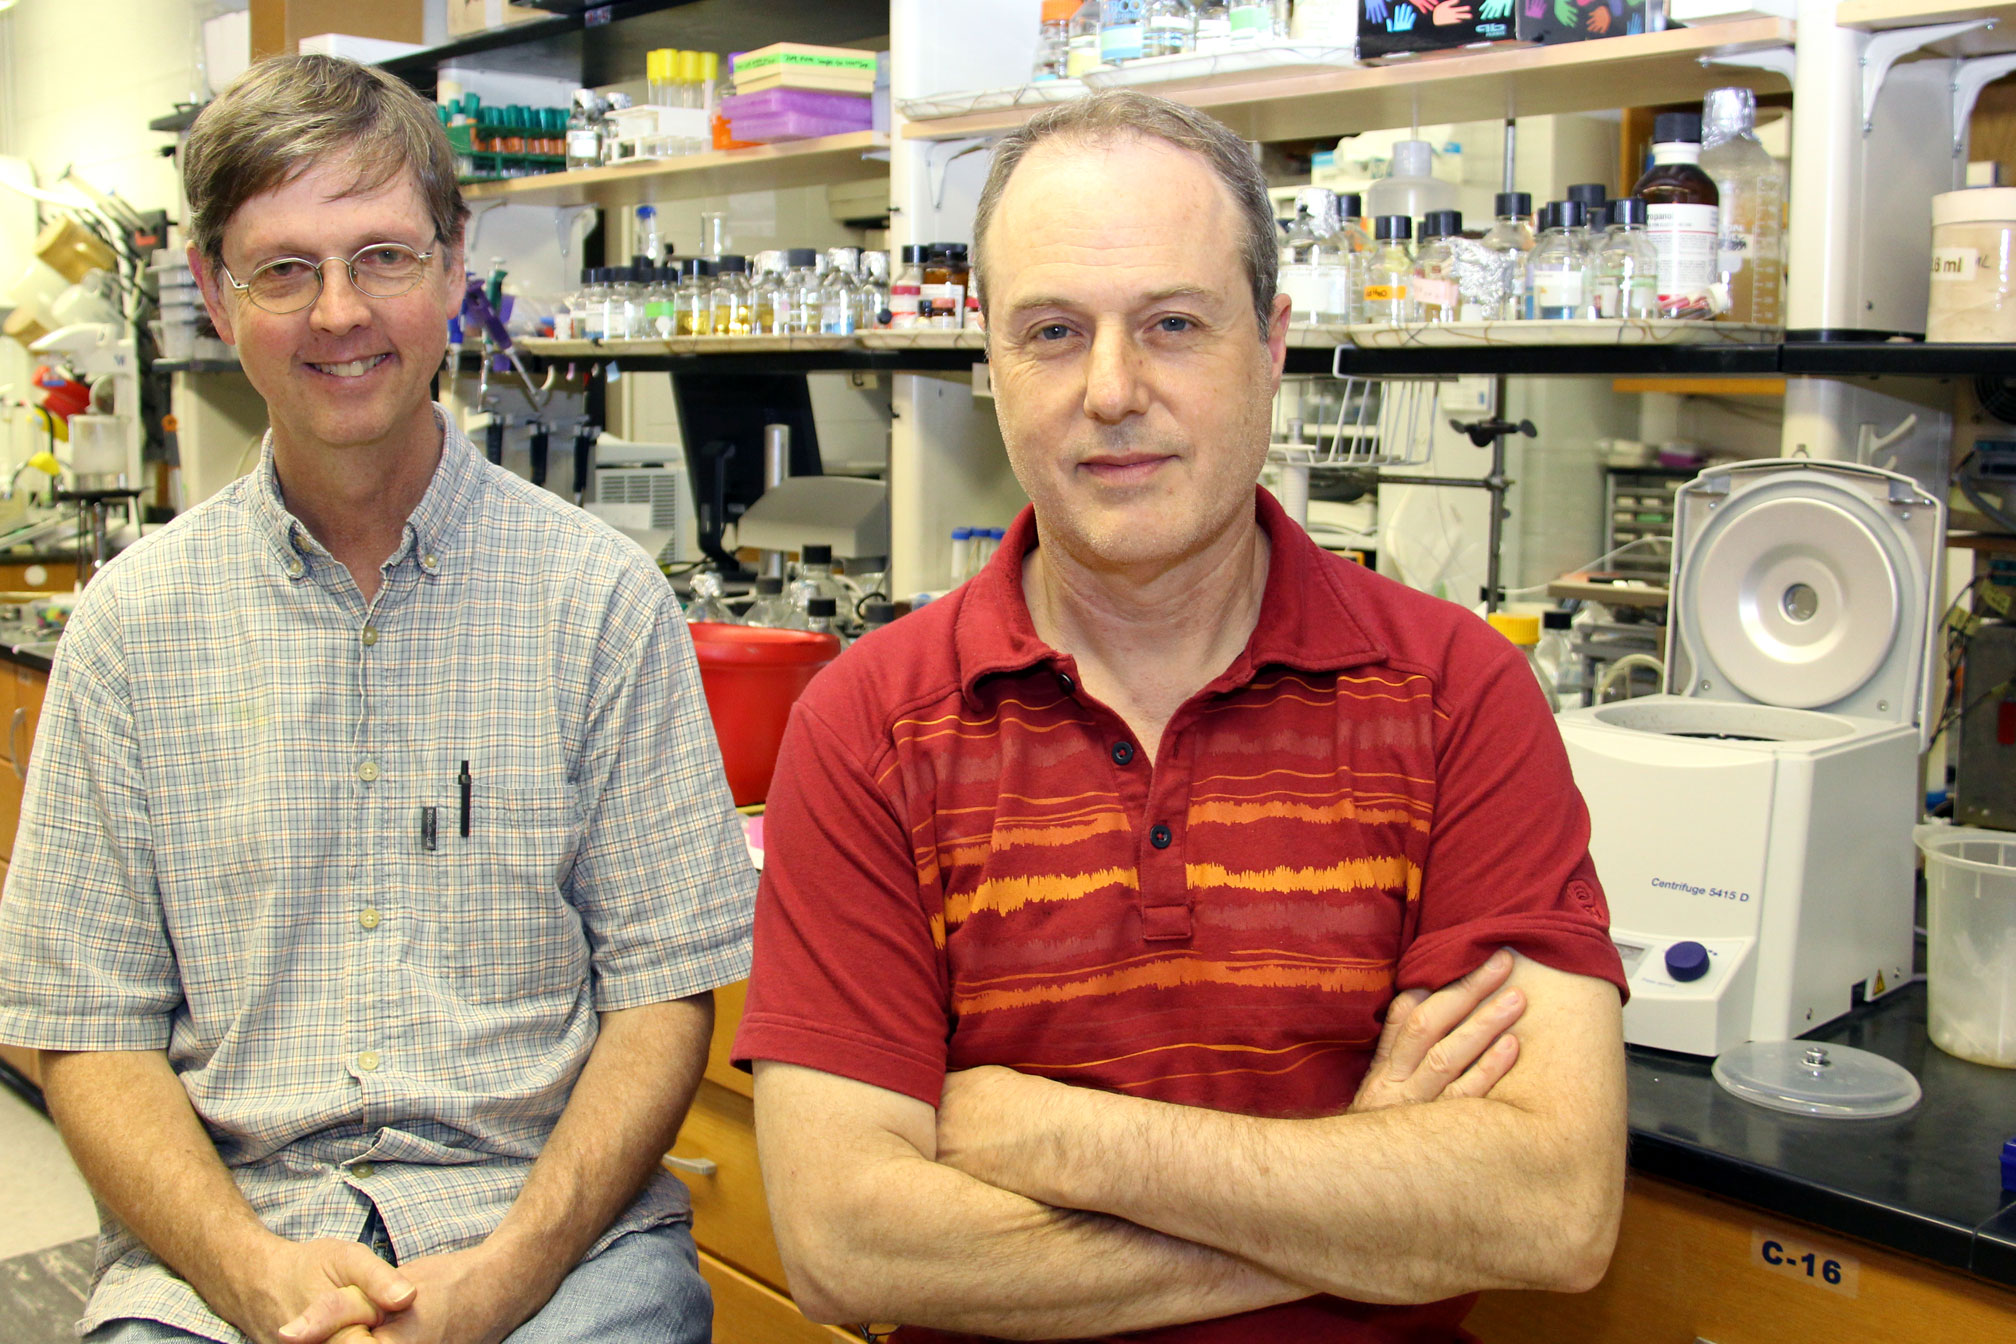 Michael Strand and Kevin D. Clark's recently published study refocused the way scientists view the development of melanin in insects.